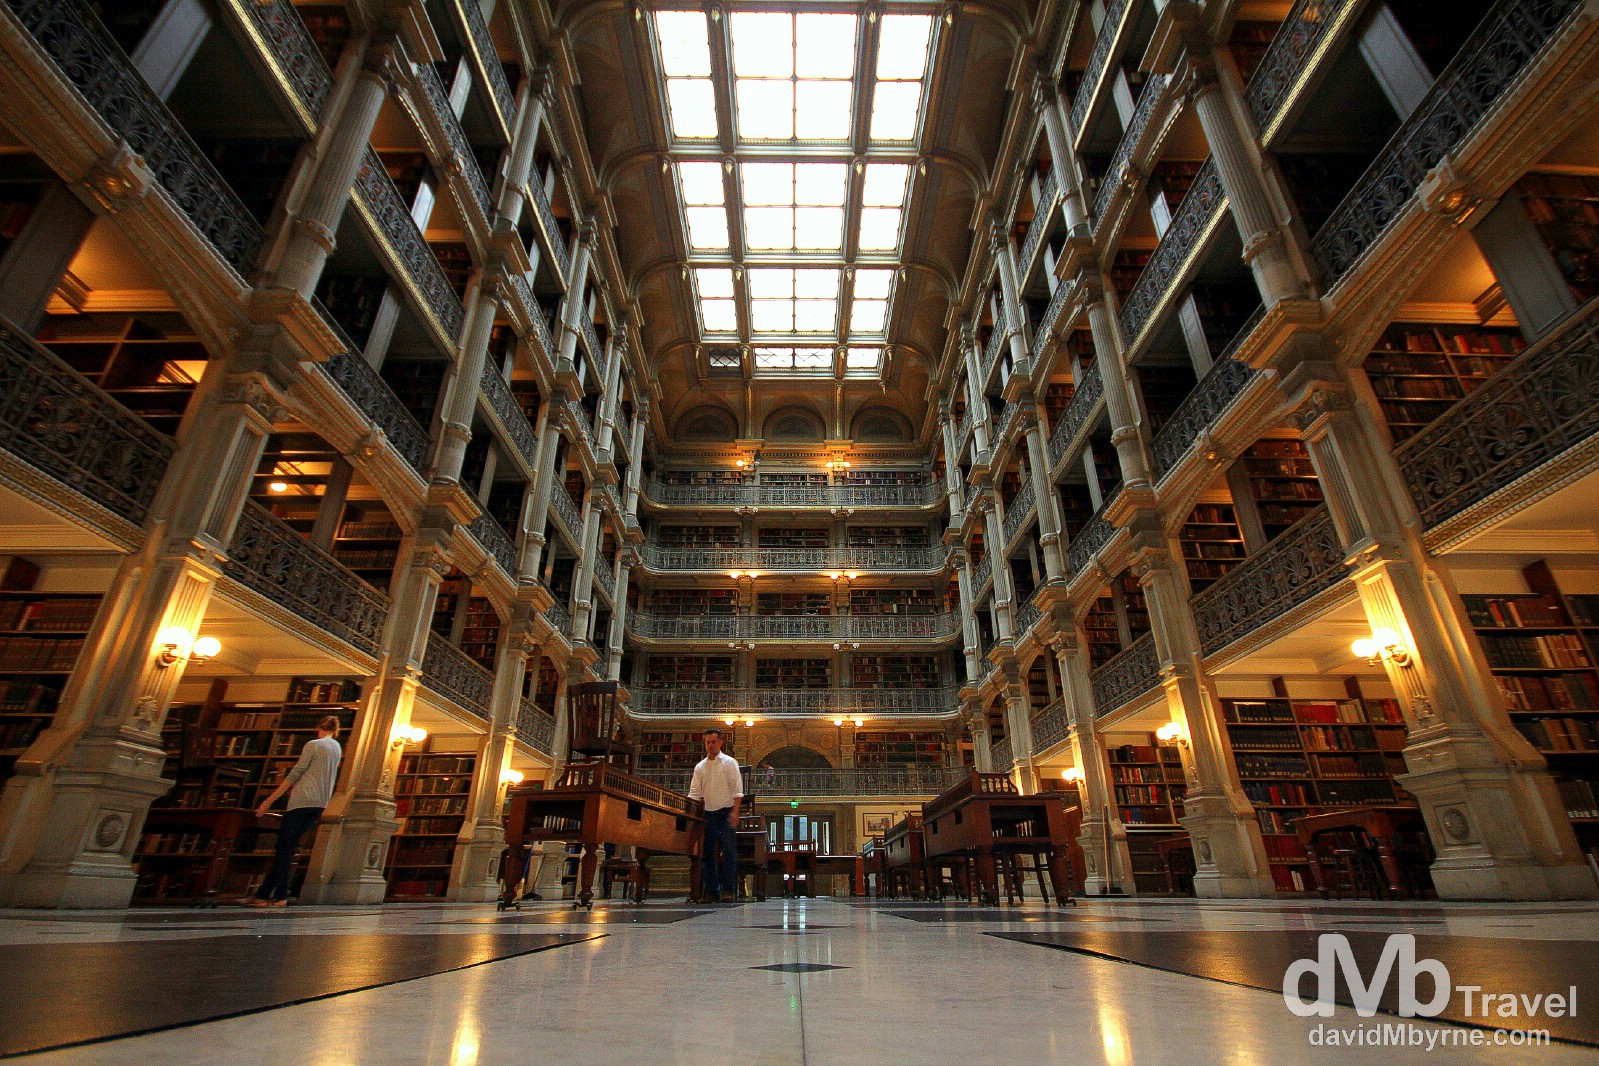 The wonderful interior of the George Peabody Library in The Peabody Institute, Mount Vernon, Baltimore, Maryland, USA. July 9th 2013.